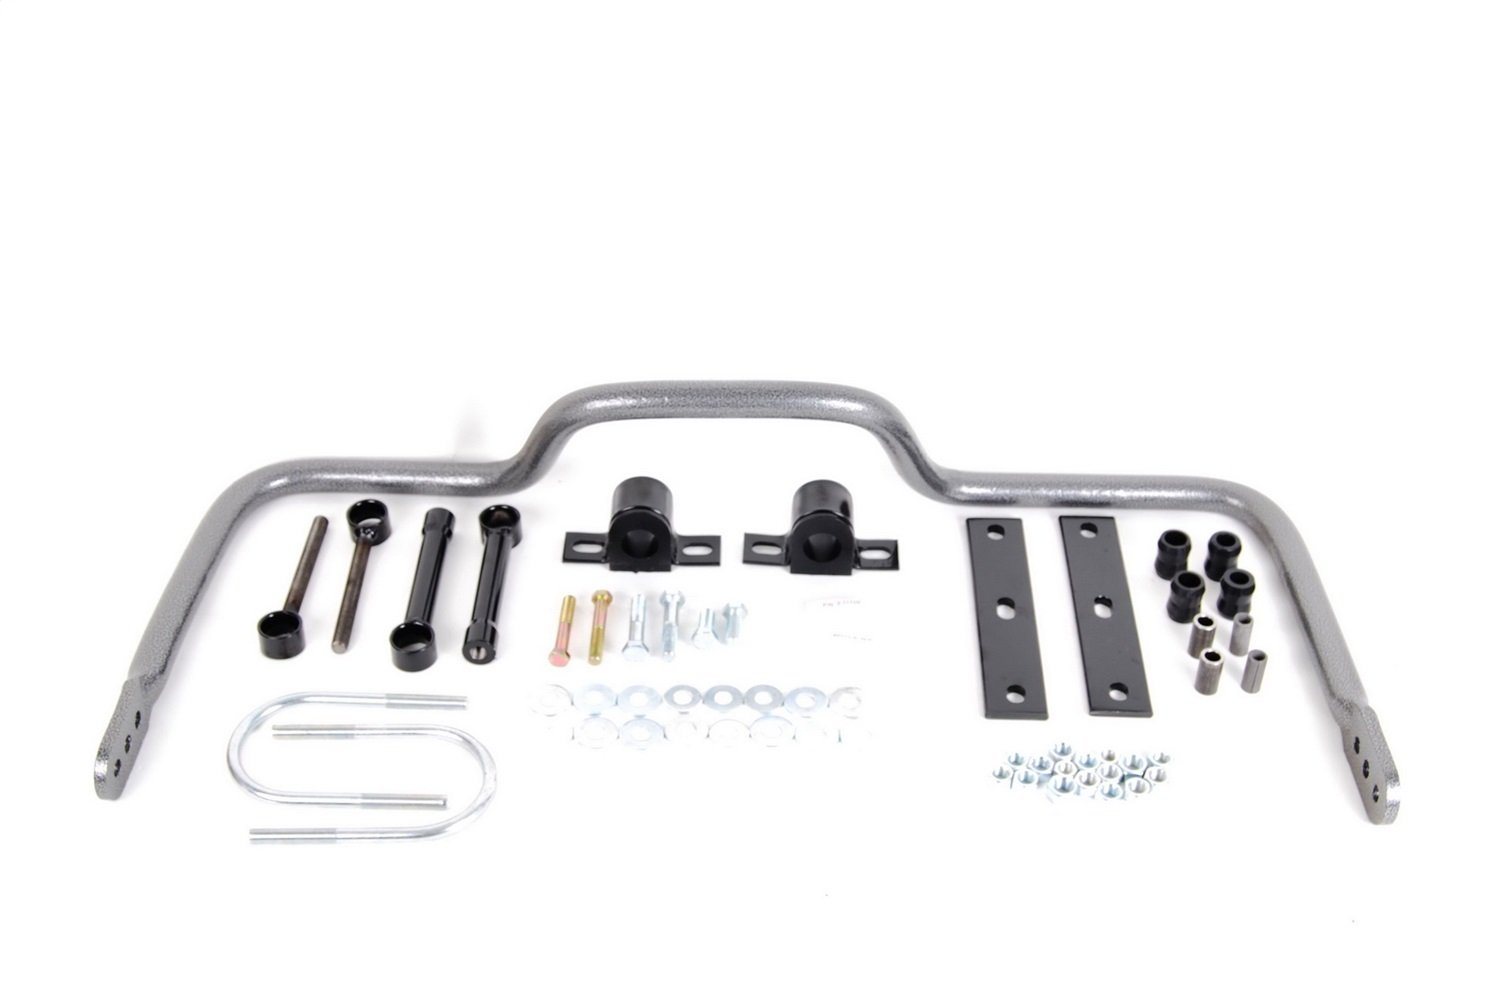 Hellwig 7643 Rear Sway Bar by Hellwig